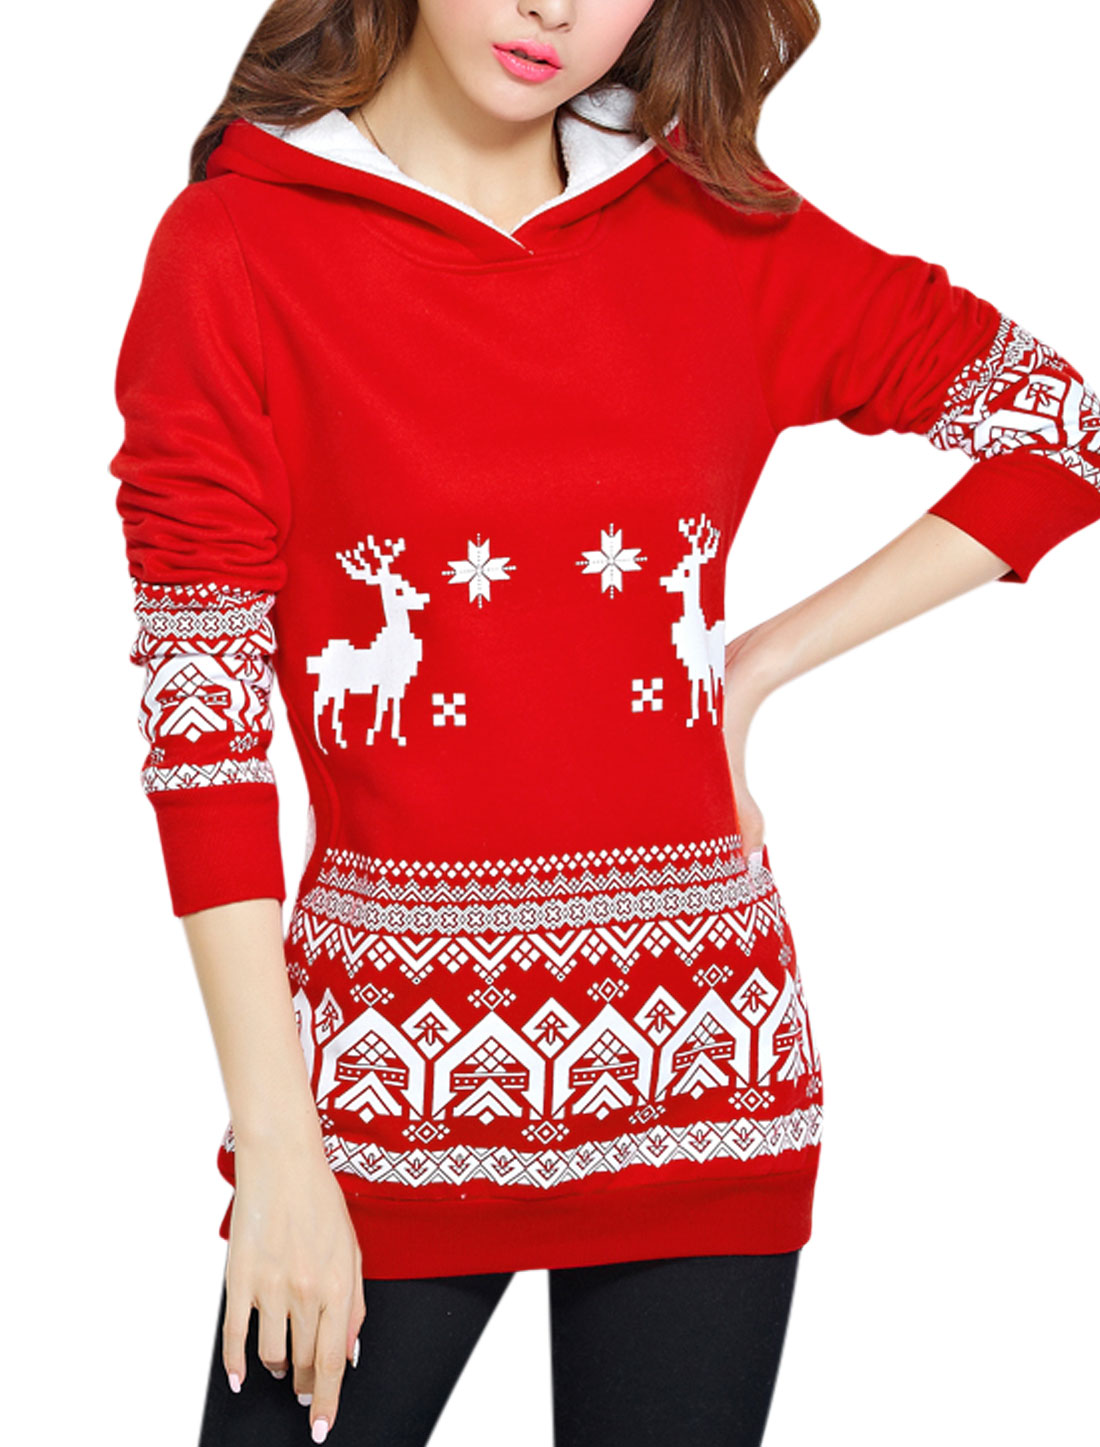 Hooded Two Side Pockets Leisure Tunic Sweatshirt for Women Red XS